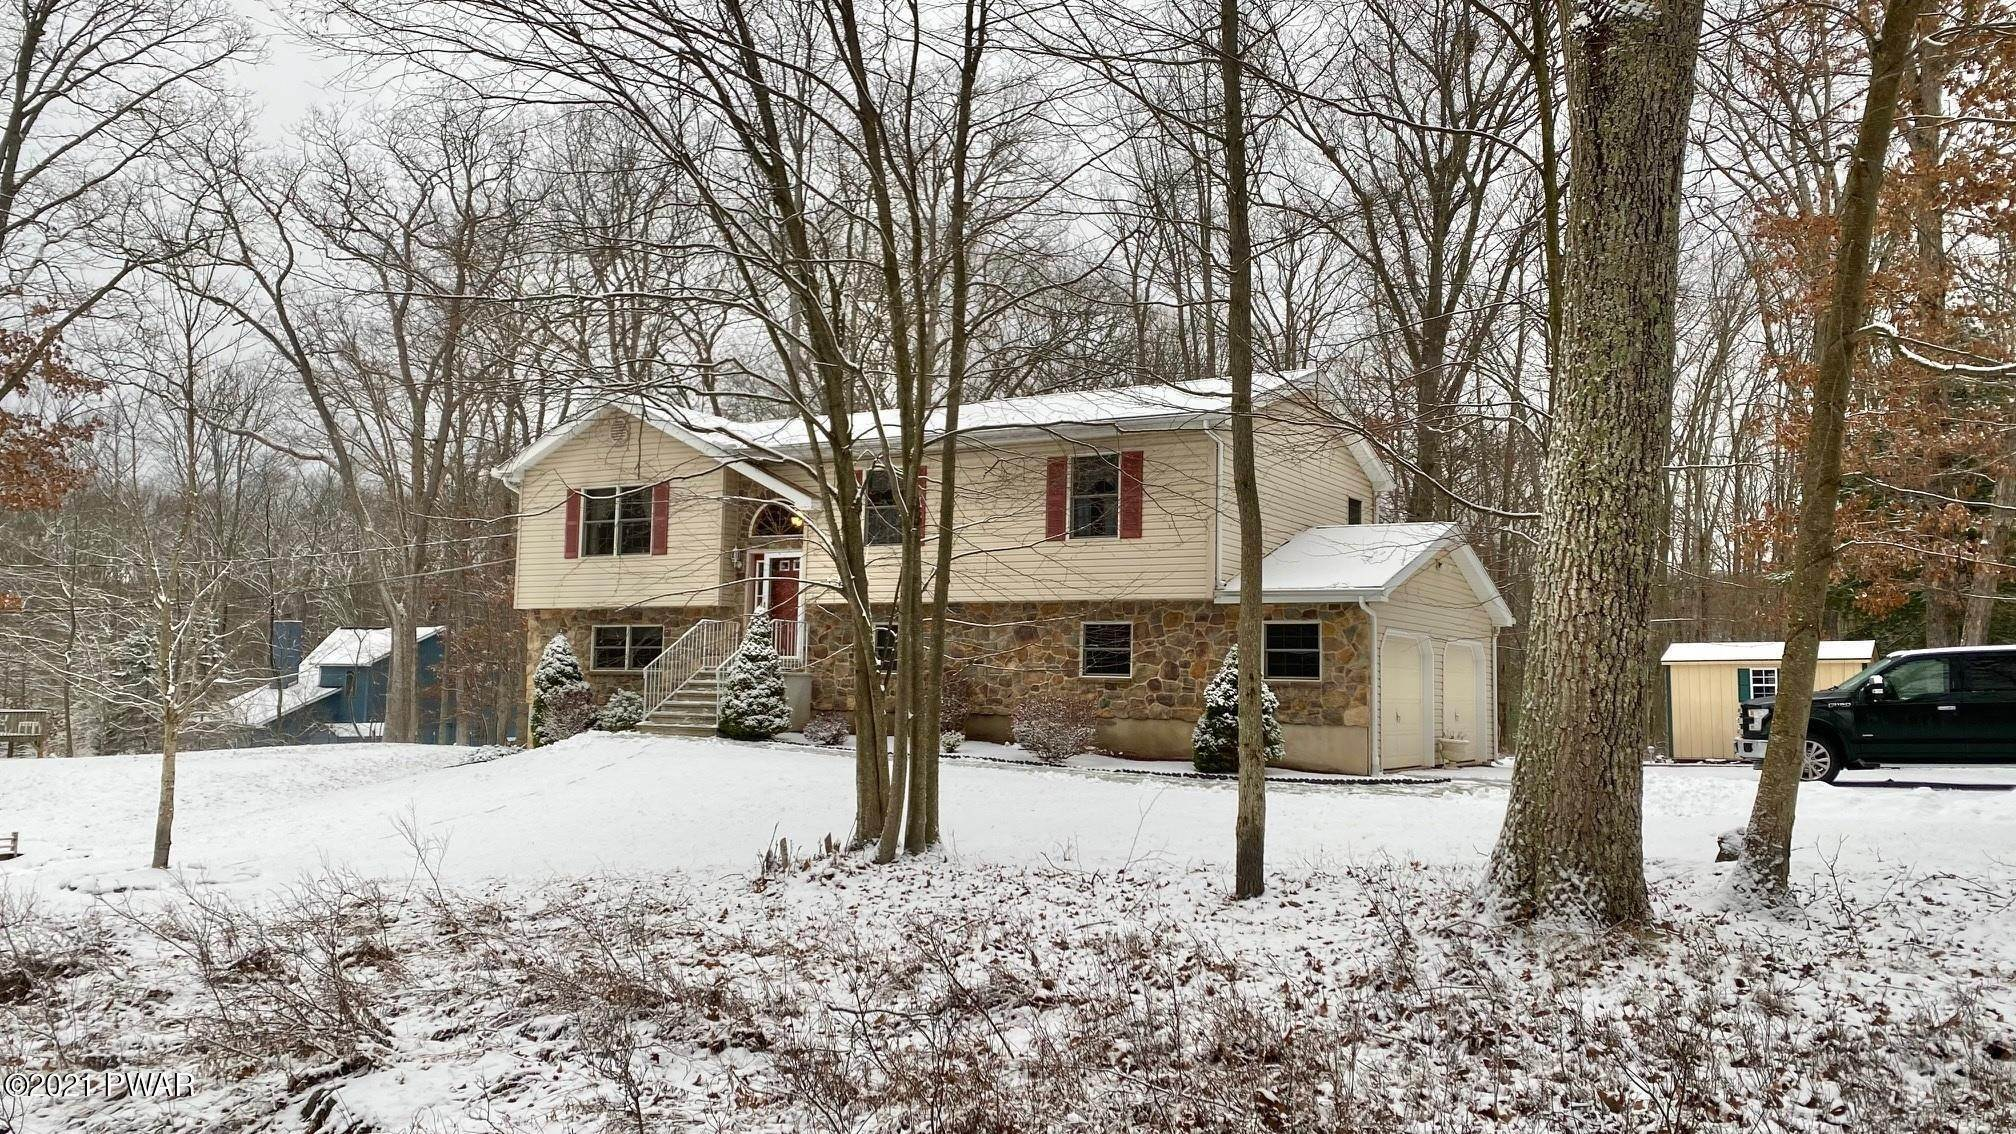 Single Family Homes for Sale at 170 Paper Birch Tafton, Pennsylvania 18464 United States